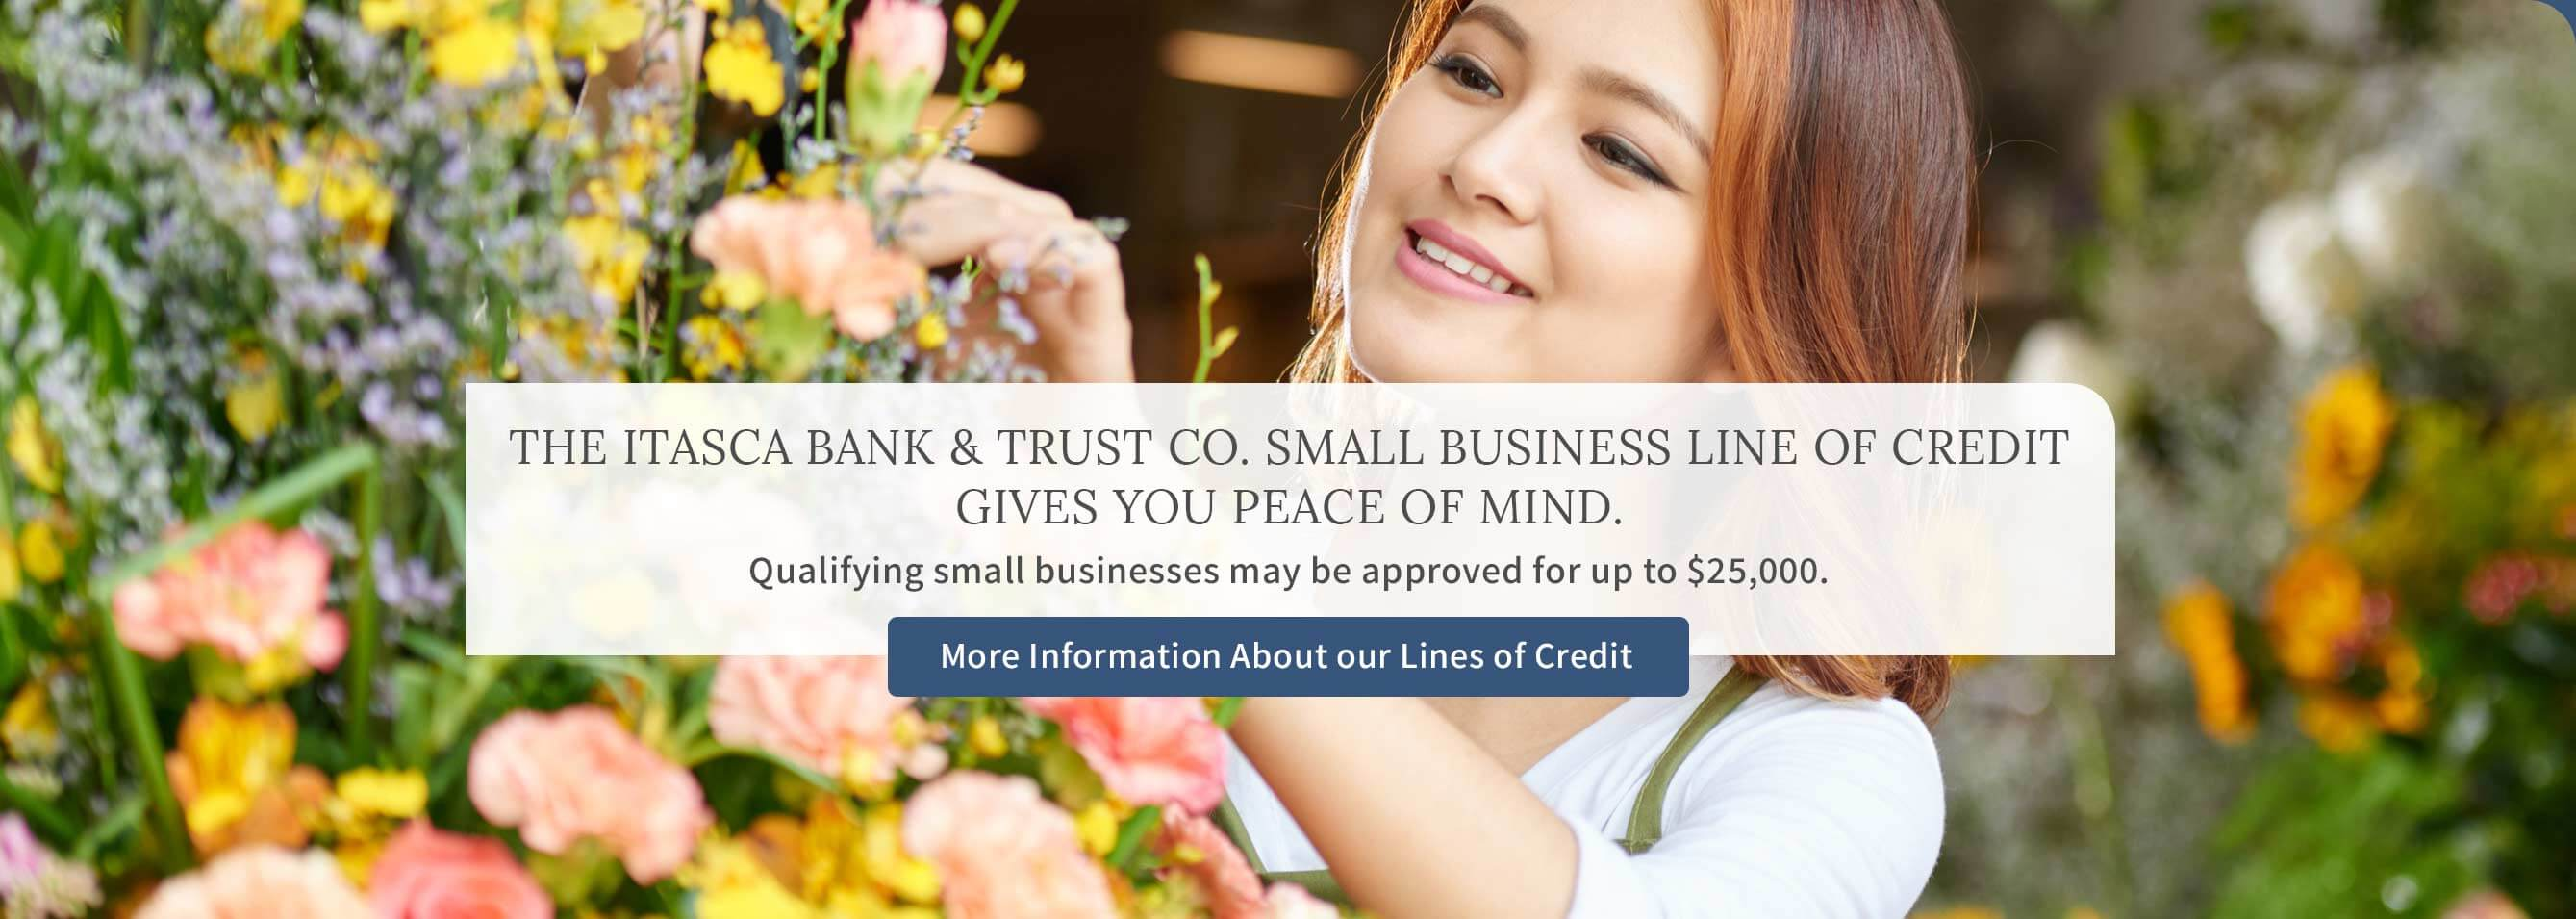 The Itasca Bank and Trust Co. small business line of credit gives you peace of mind. Qualifying small businesses may be approved for up to $25,000. More information about our lines of credit.